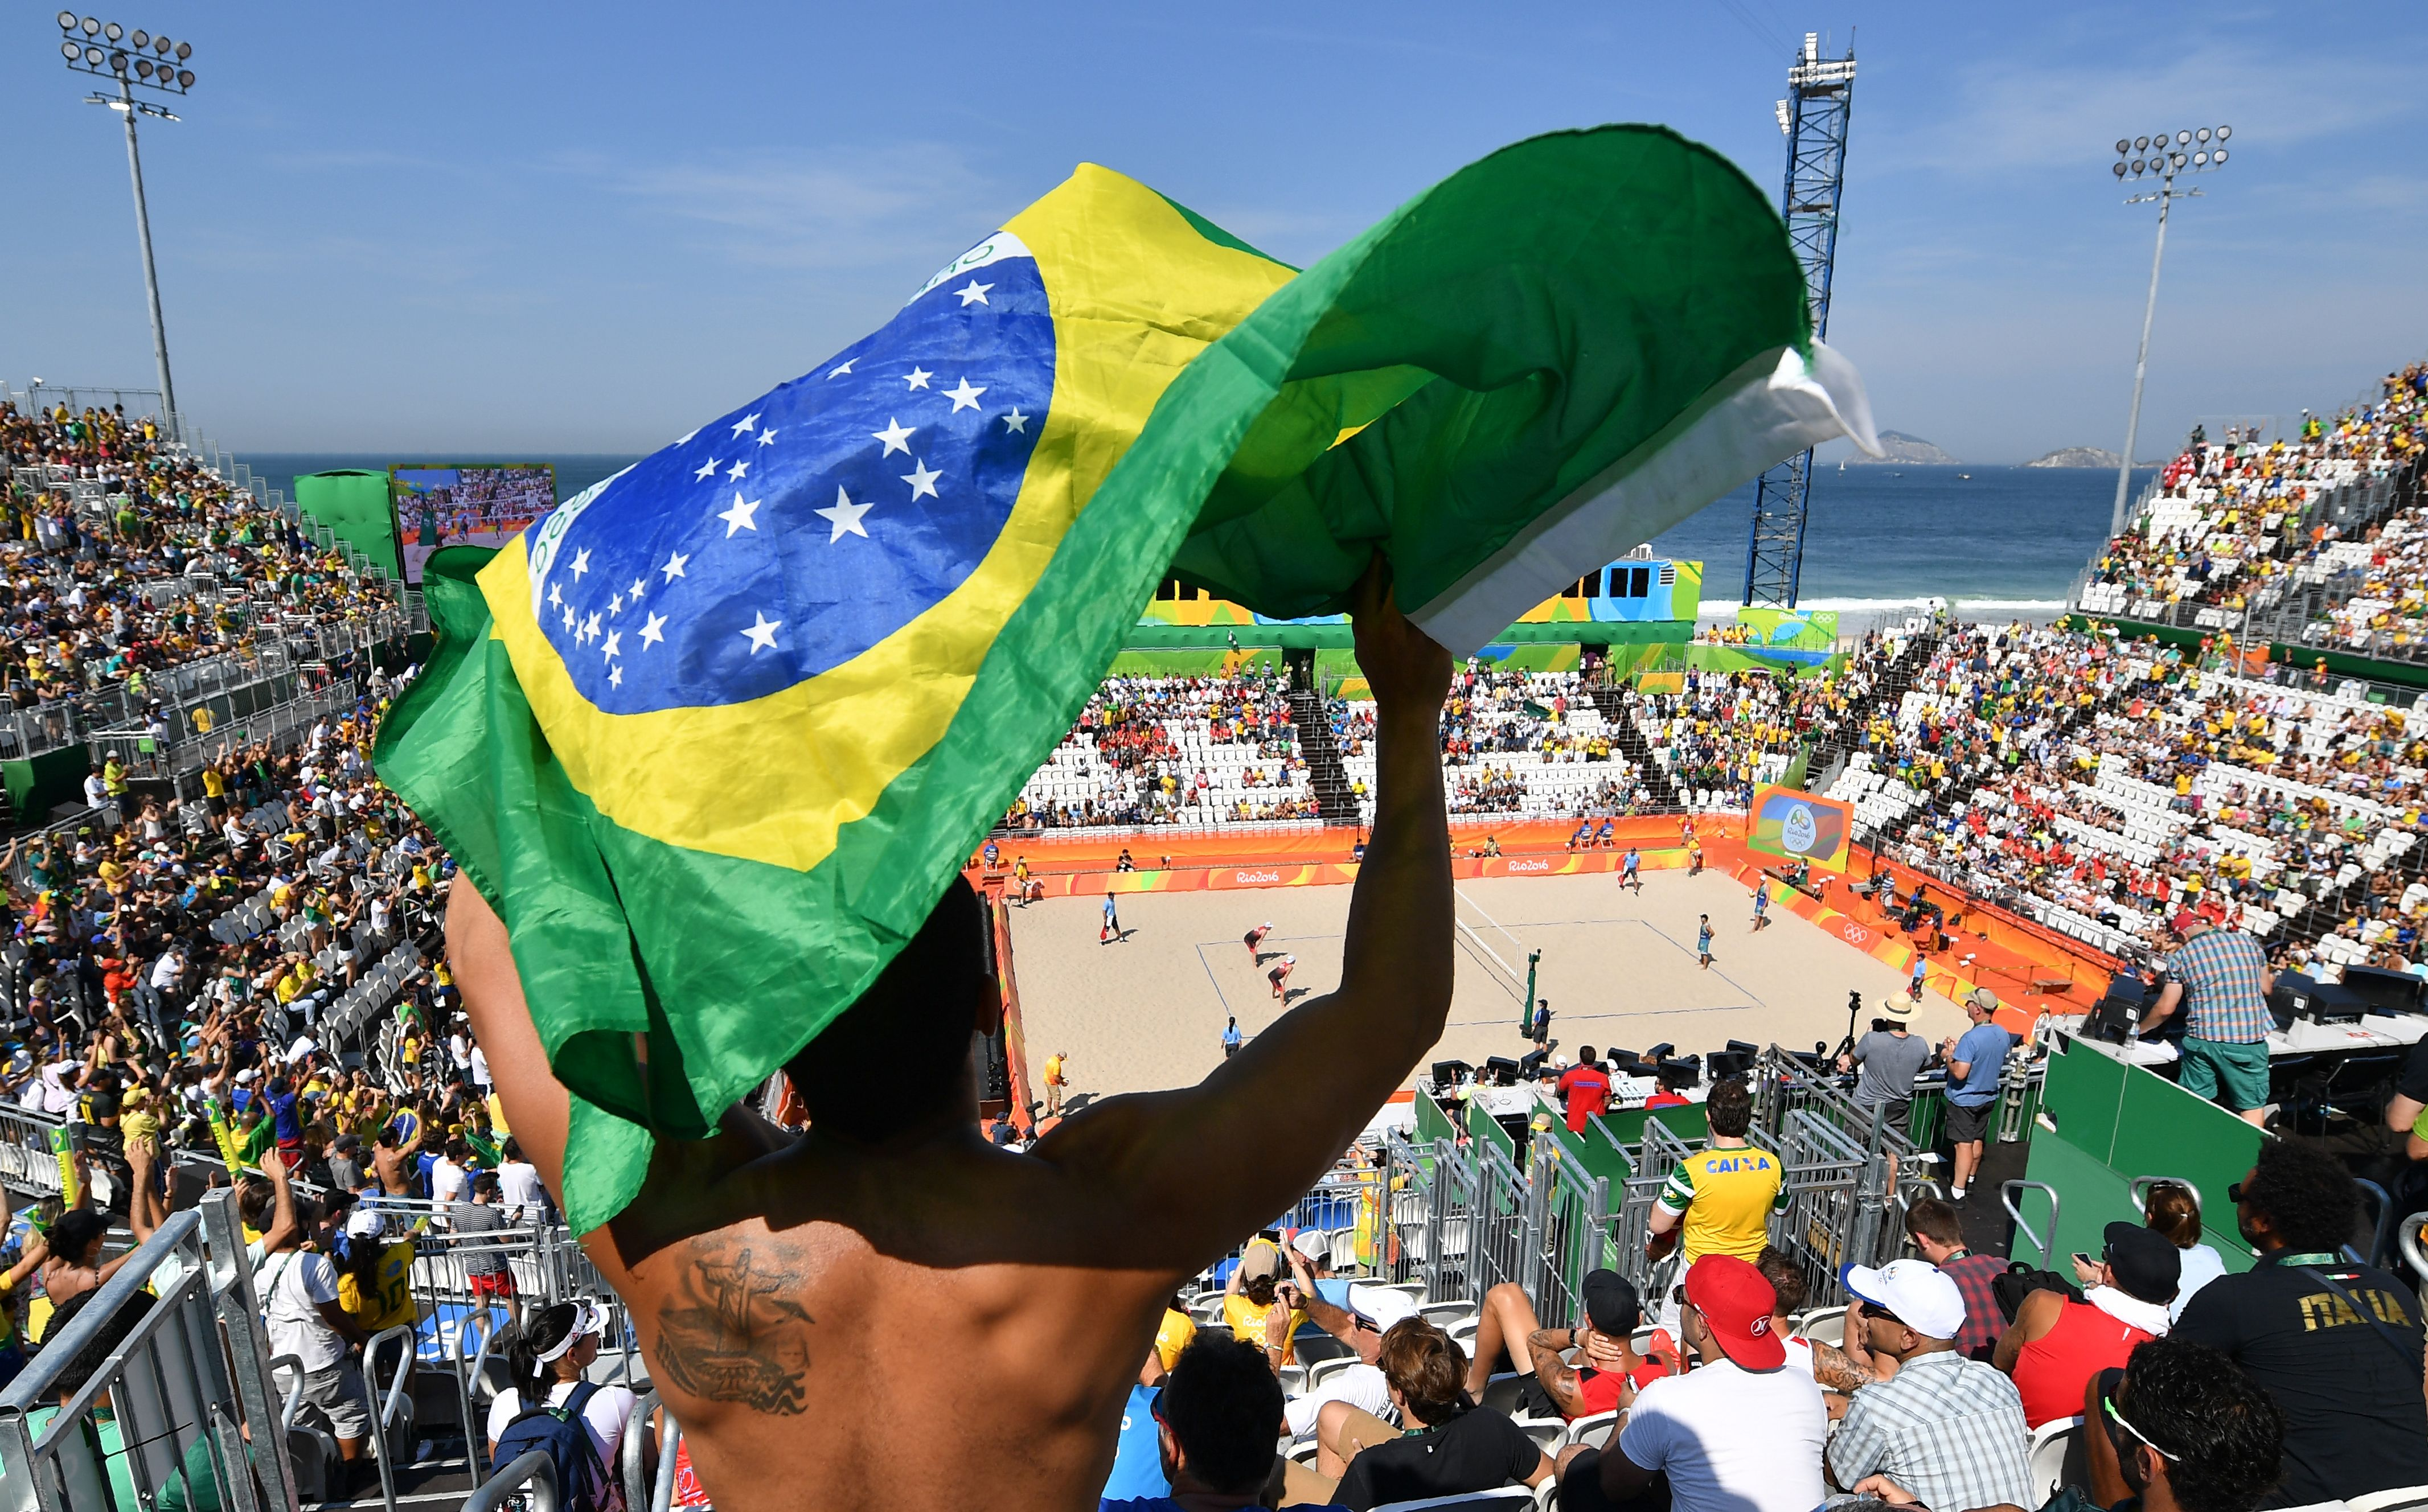 The women's beach volleyball qualifying match between Spain and Argentina at the Beach Volley Arena in Rio de Janeiro on Aug. 6, 2016.